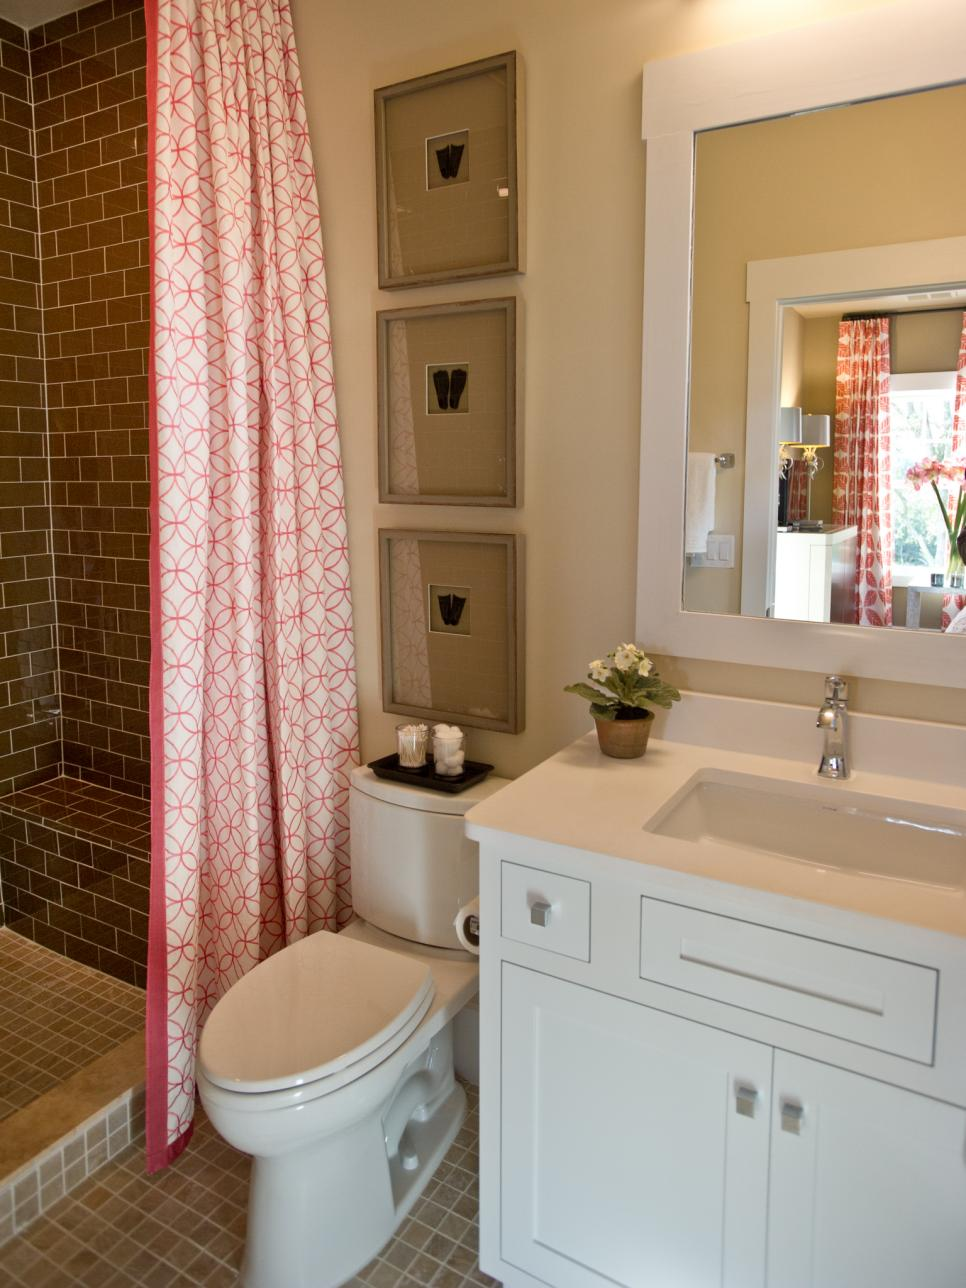 Hgtv smart home 2013 guest bathroom pictures hgtv smart for Guest bathroom decorating ideas pictures